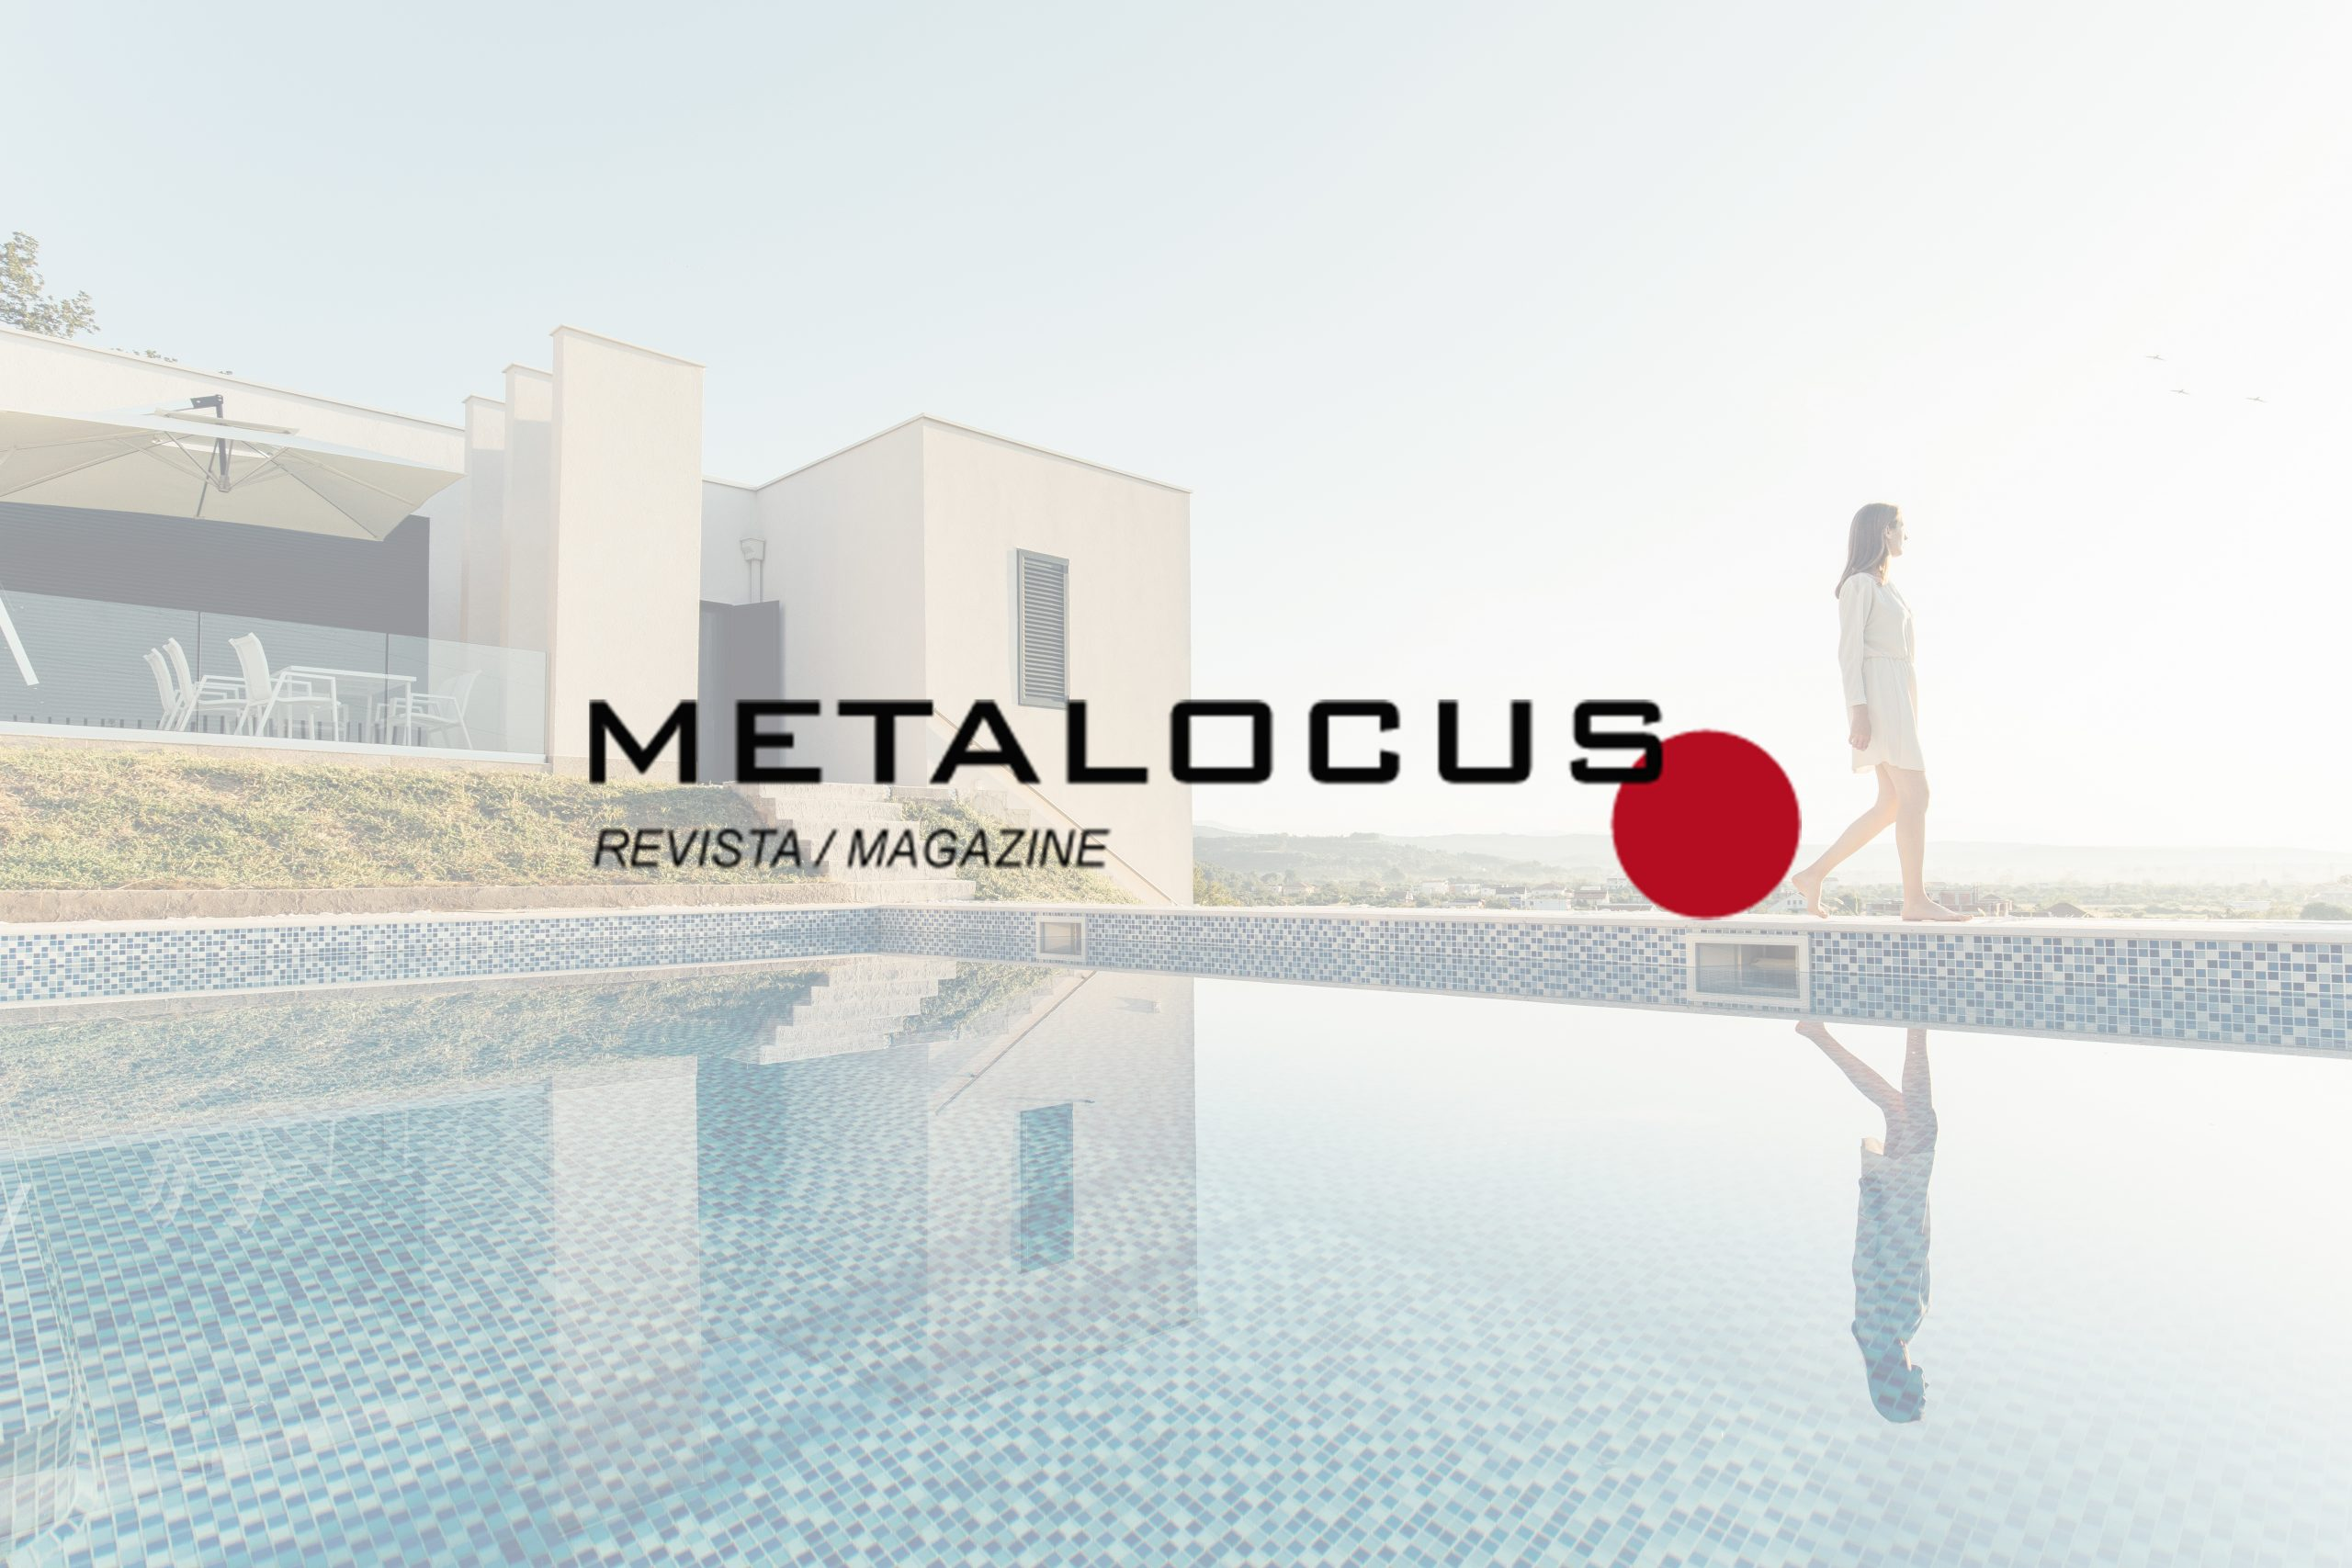 THE HILL HOUSE HAS BEEN FEATURED ON METALOCUS MAGAZINE